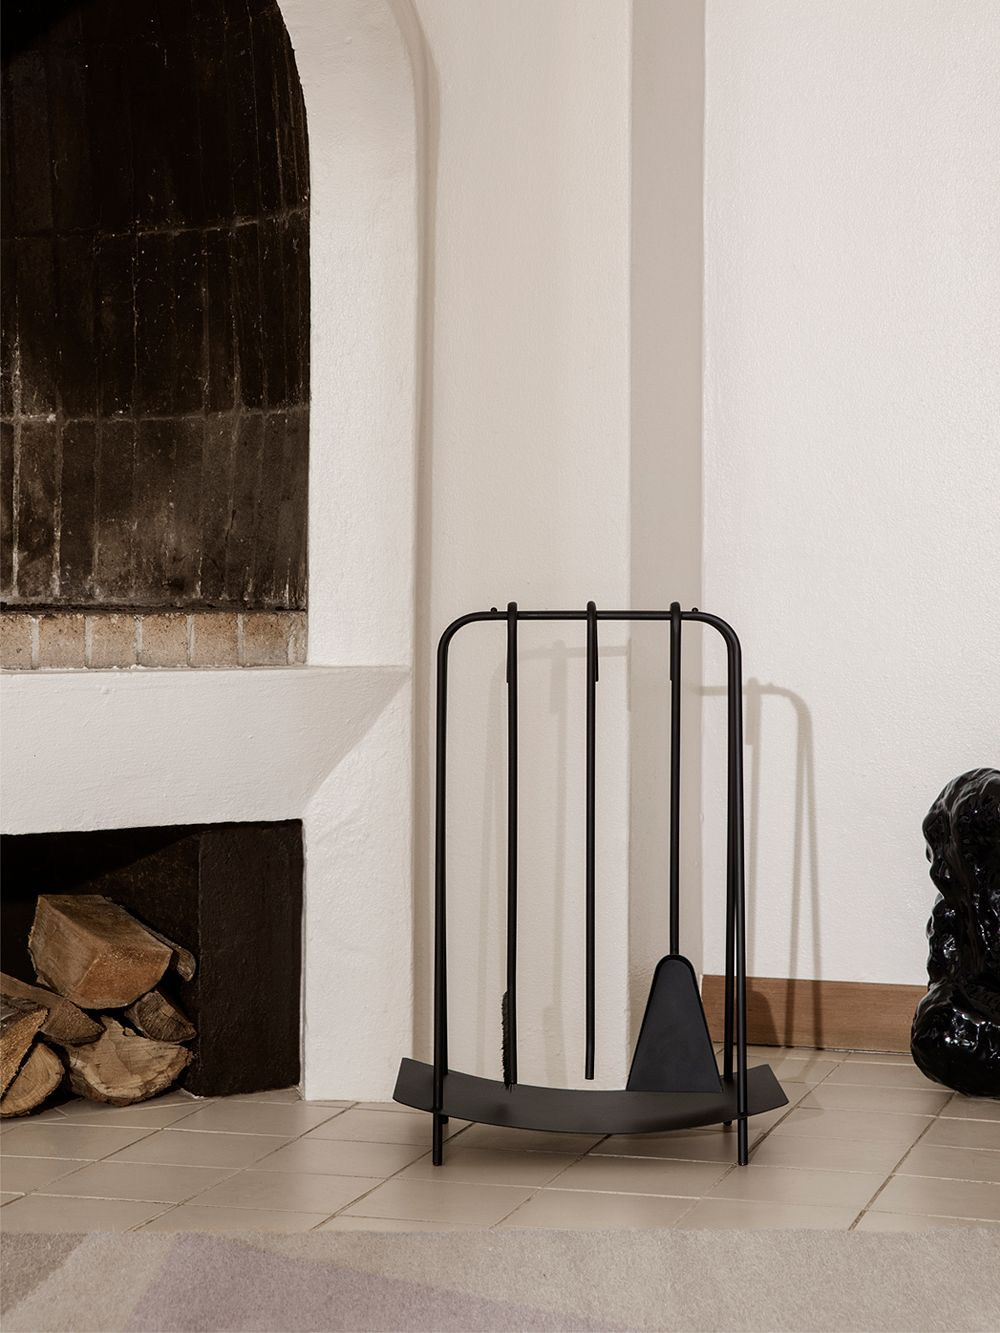 Ferm Living's Port fireplace tools